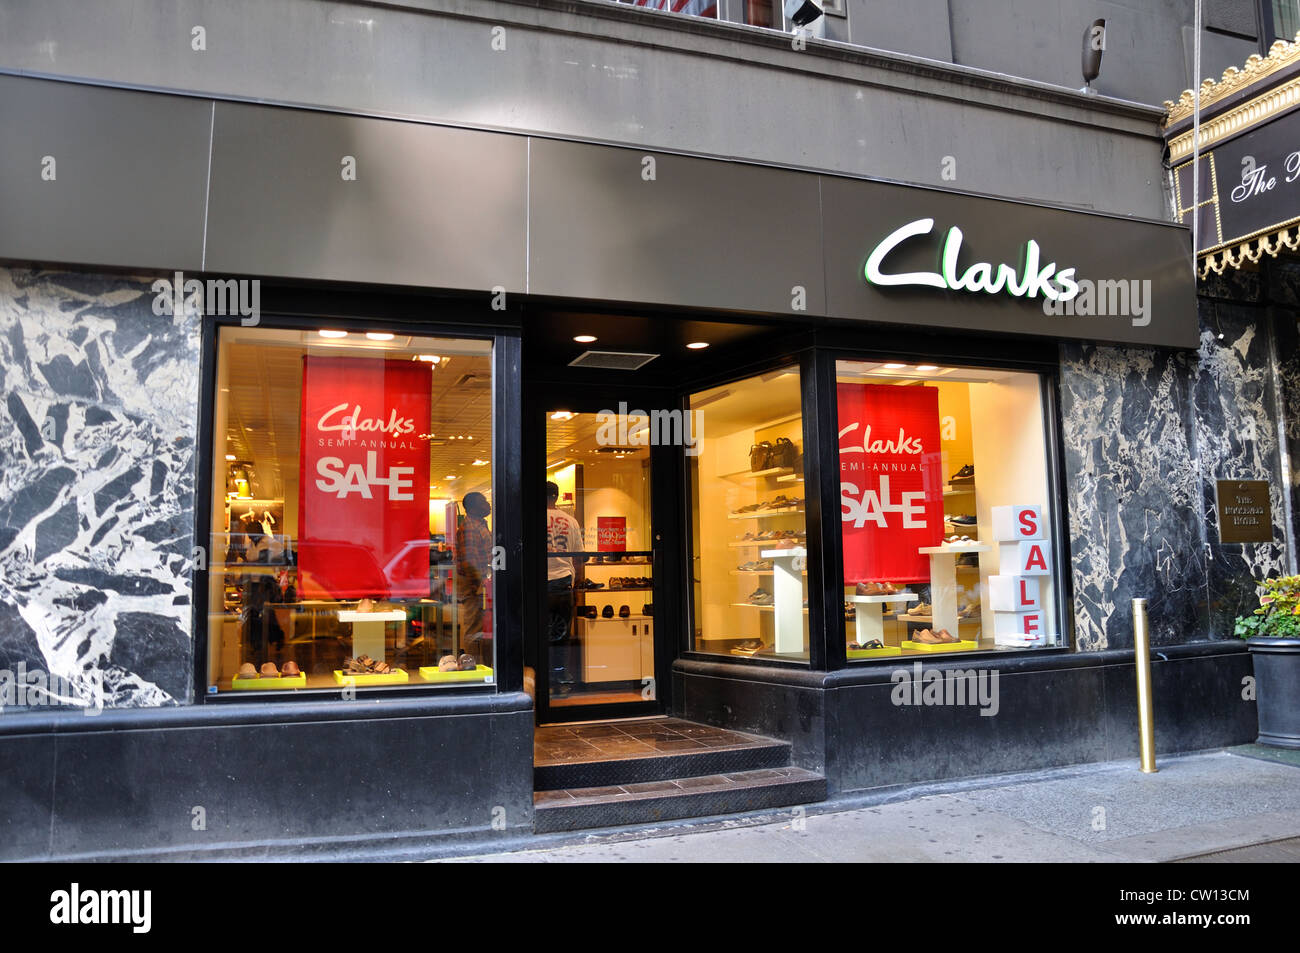 Clarks Shoes Immagini & Clarks Shoes Fotos Stock Alamy